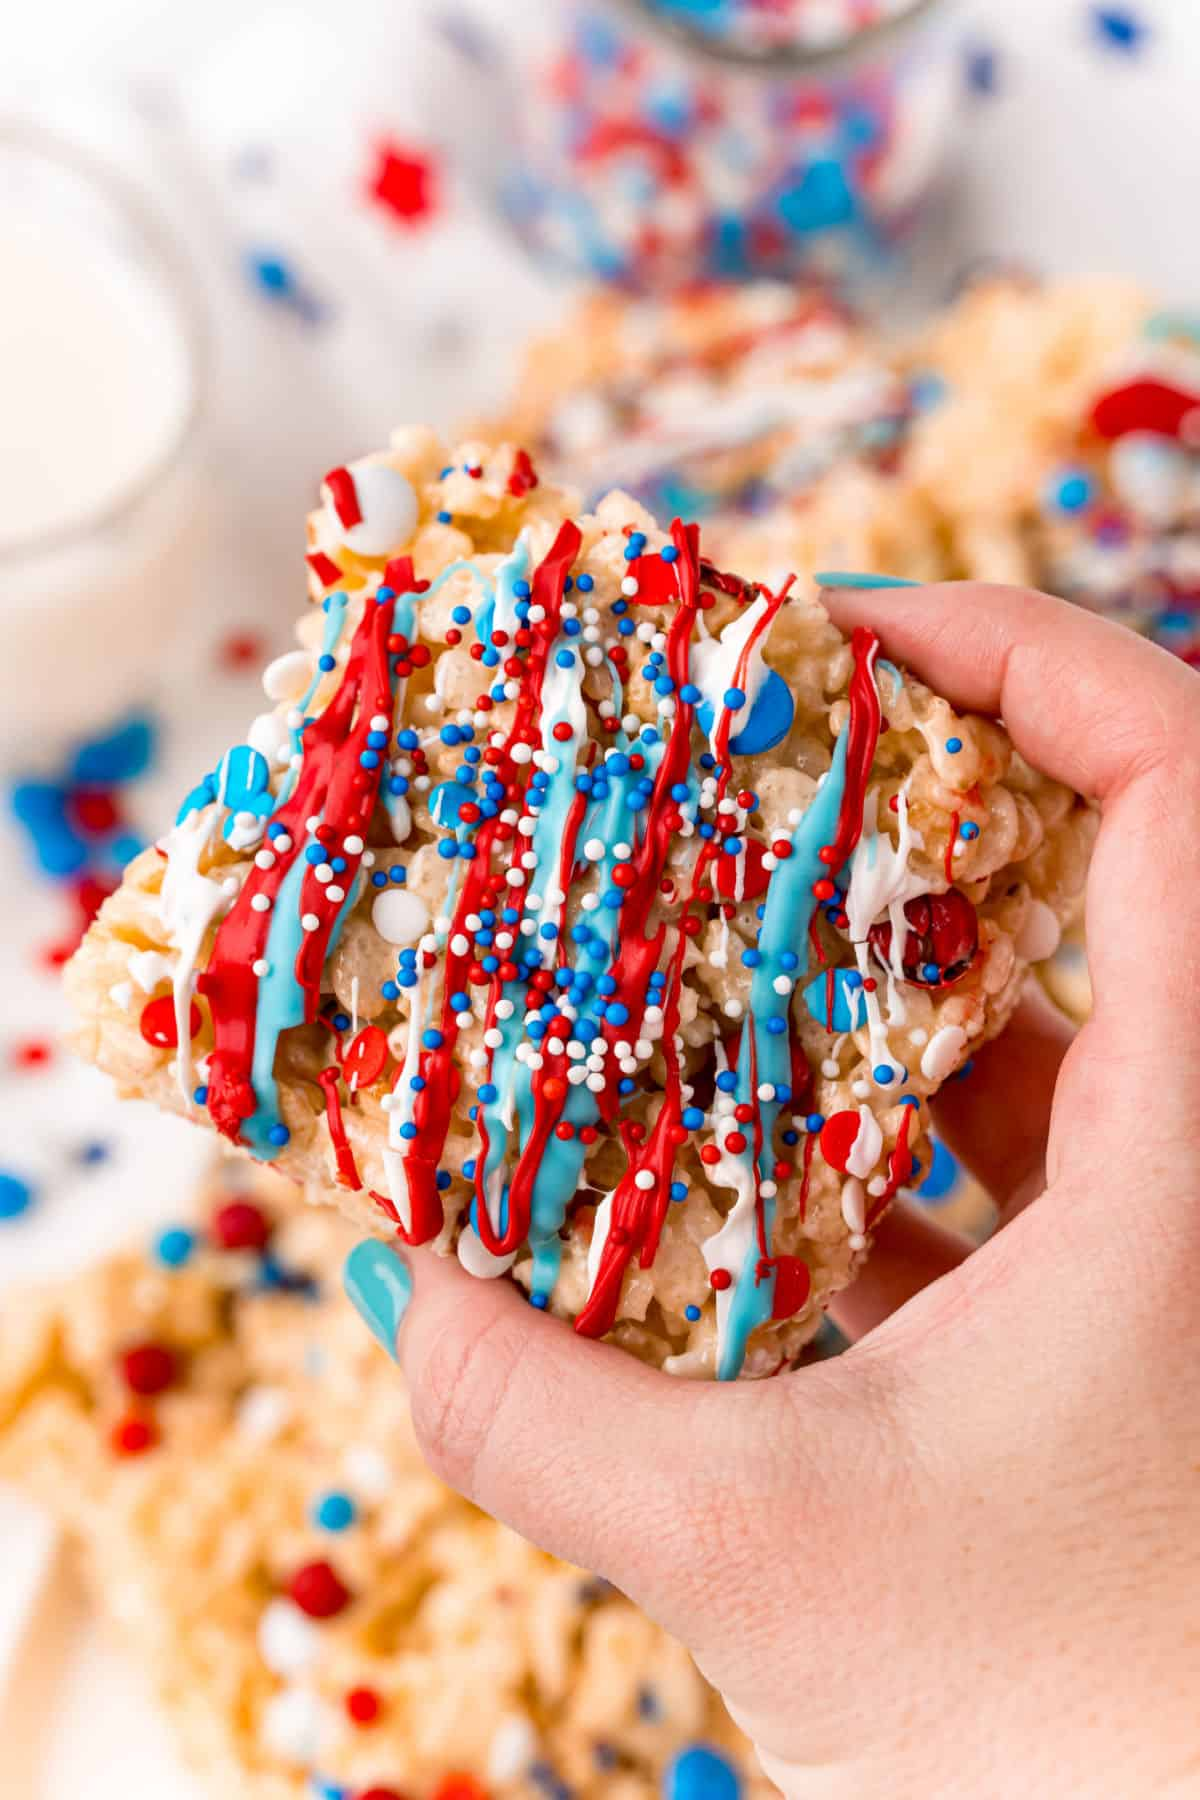 Red white and blue sprinkled rice crispy treat being held up close.